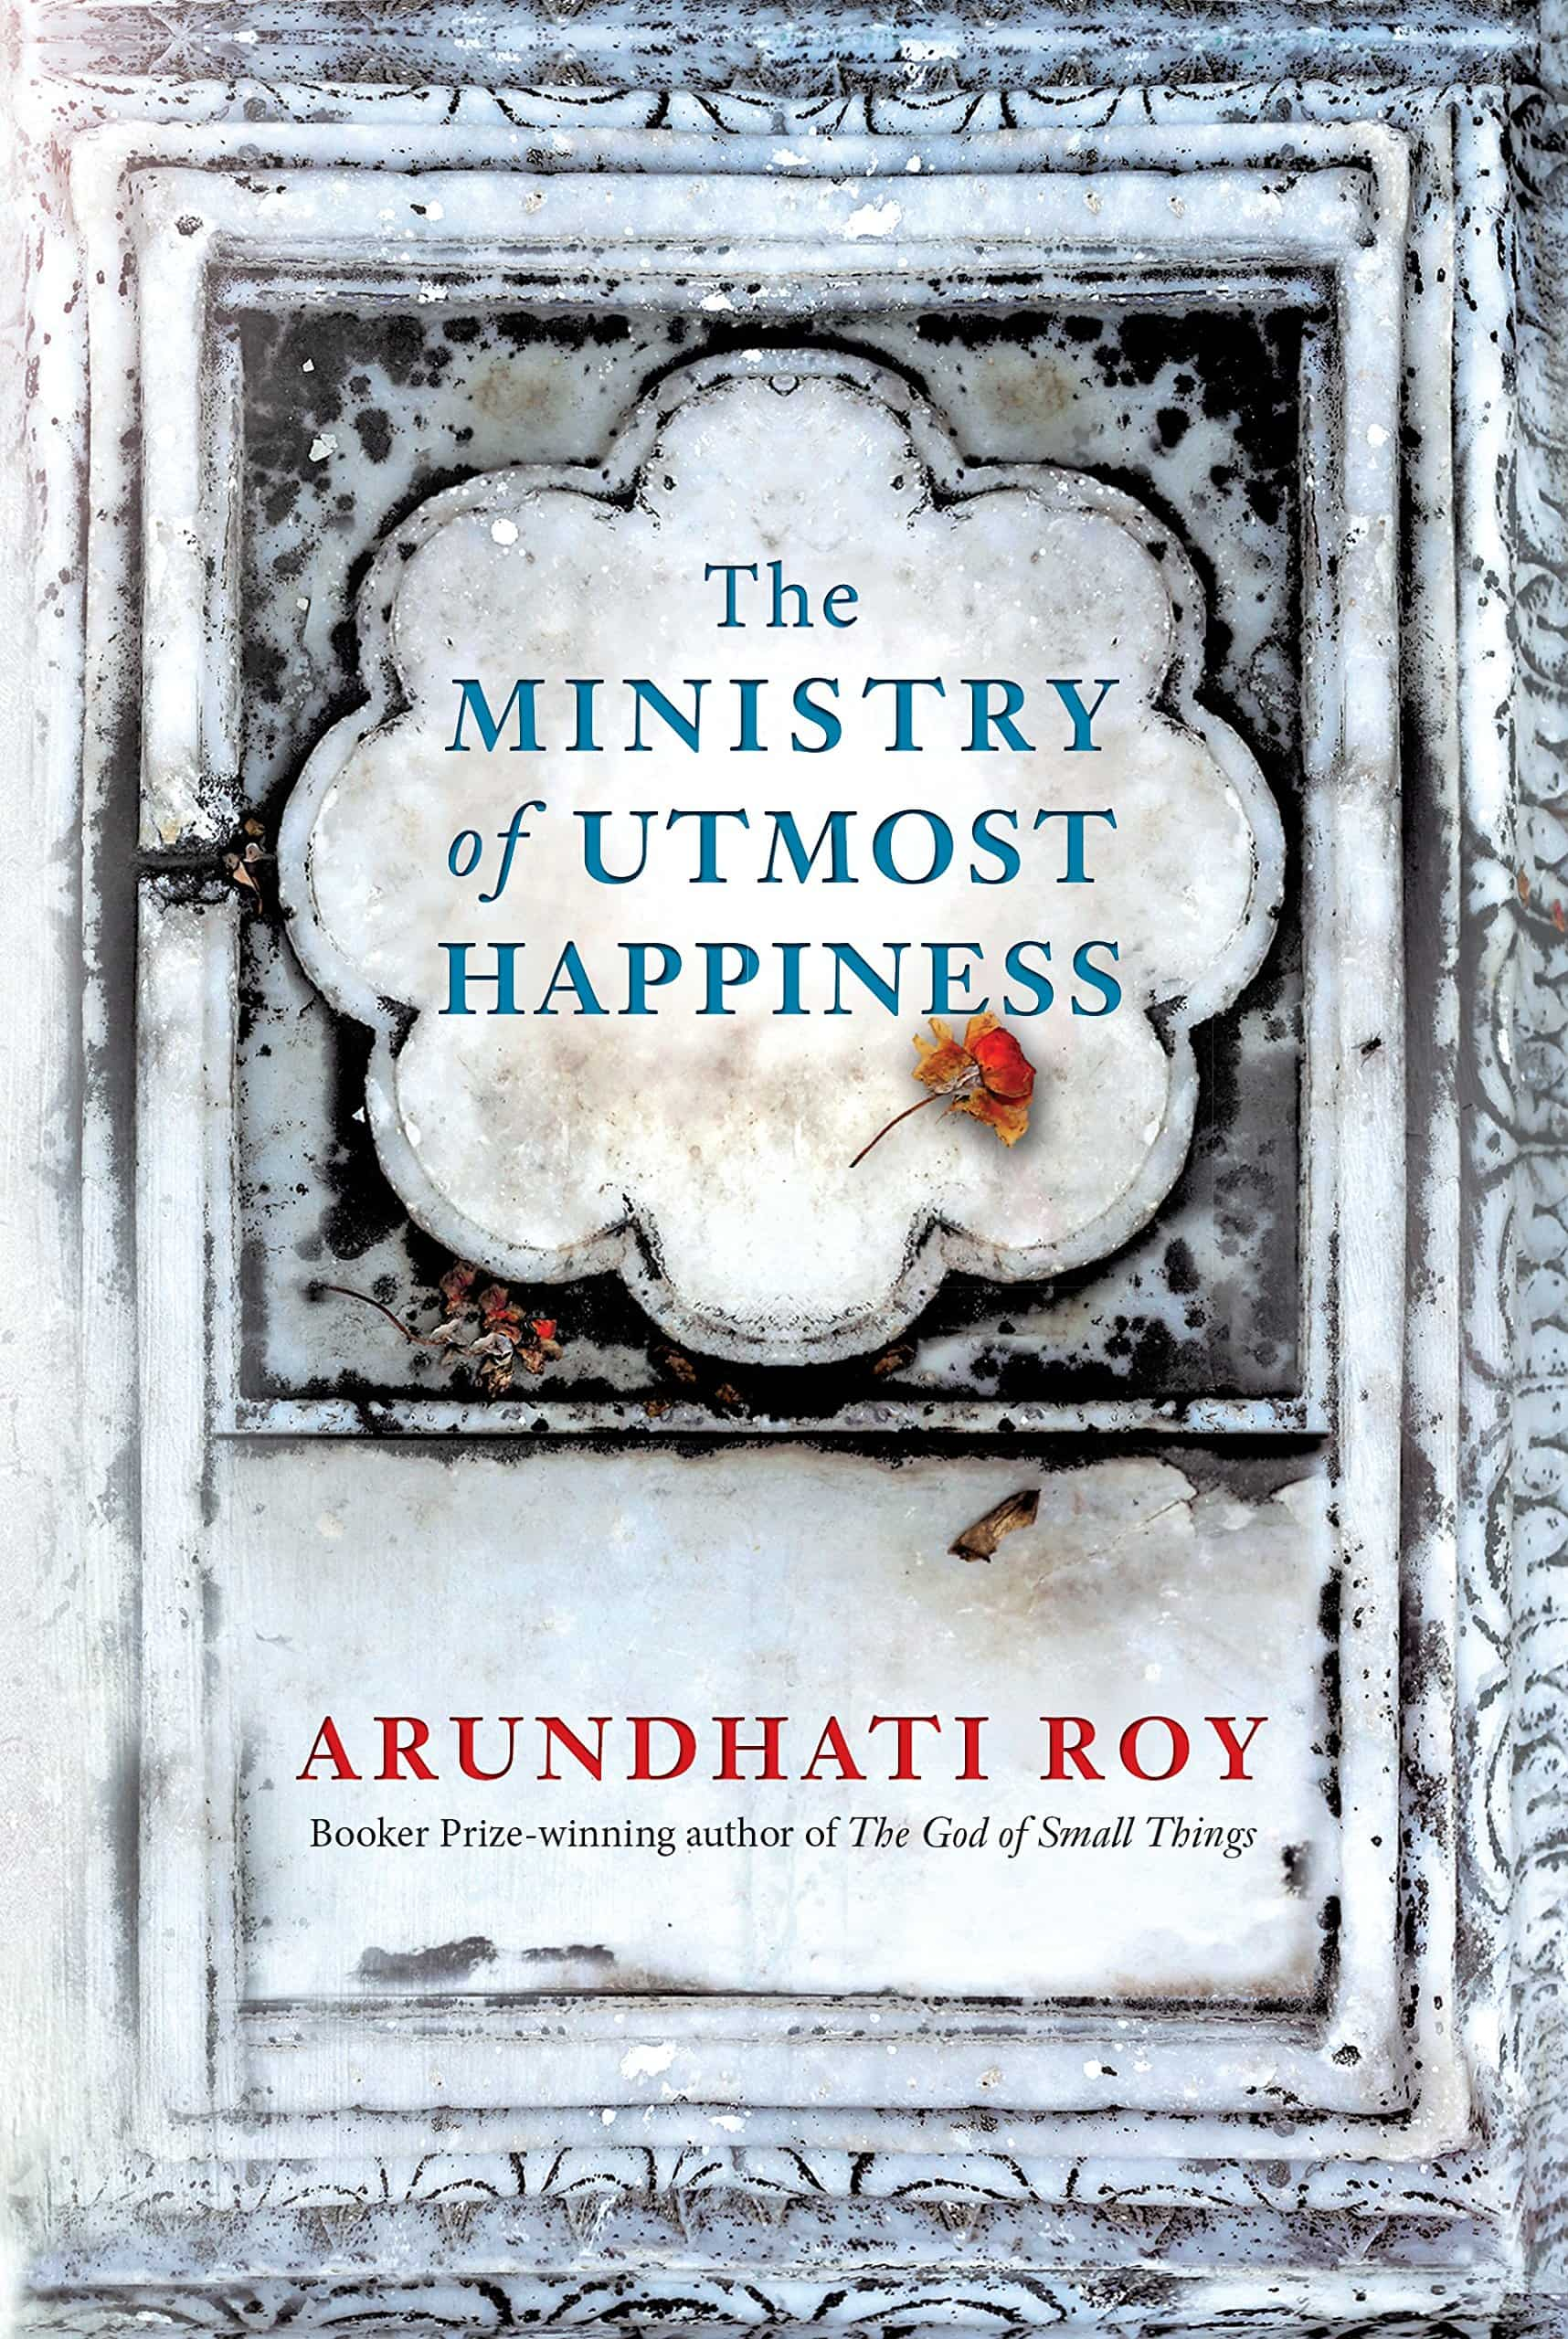 Arundhati Roy's 'The Ministry of Utmost Happiness', was released worldwide this summer.